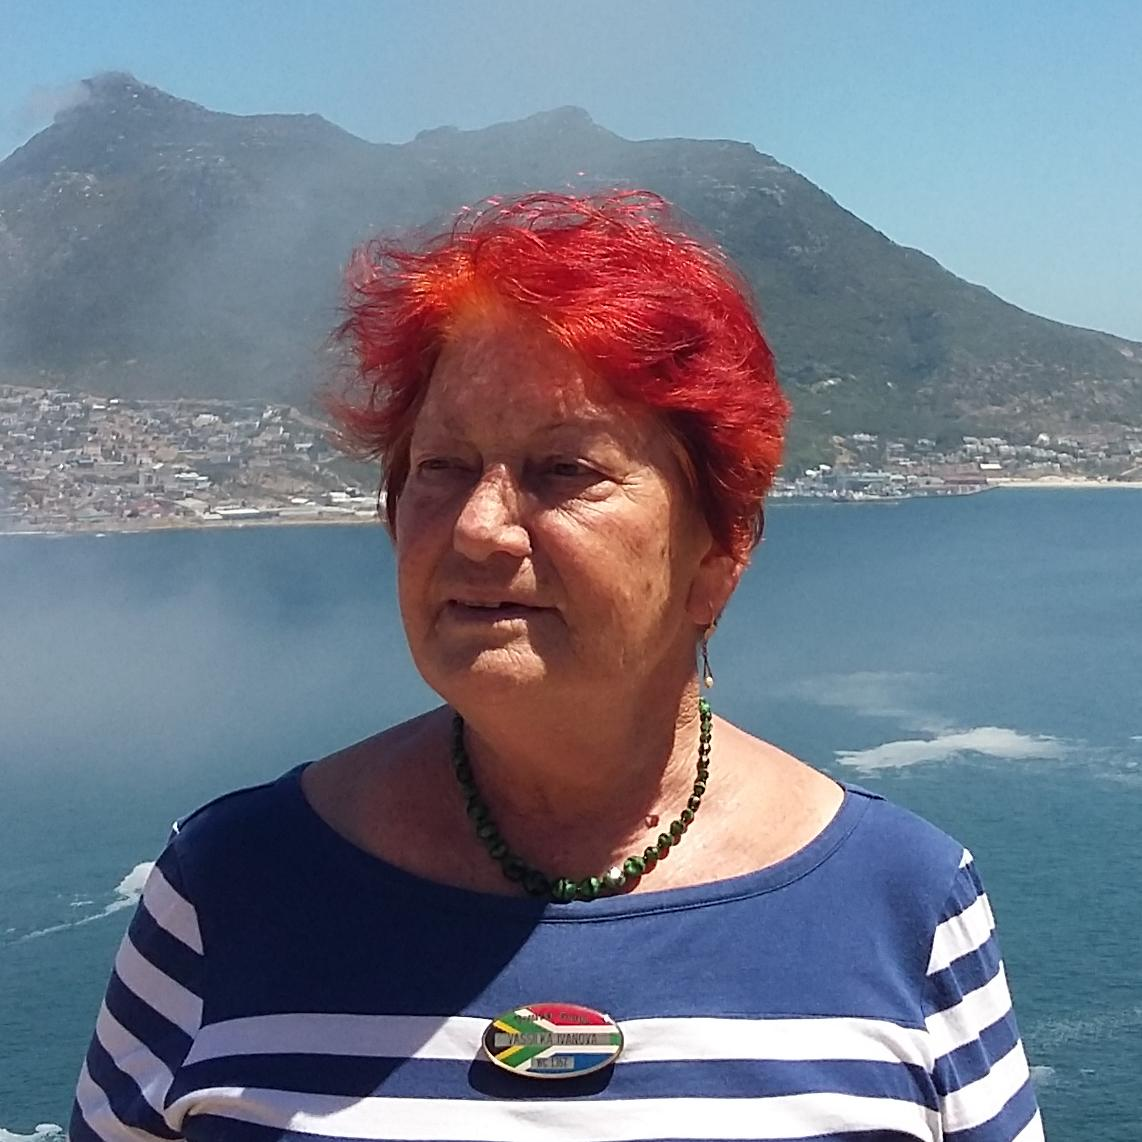 Vaska Ivanova is a local tour guide for Cape Town (South Africa)